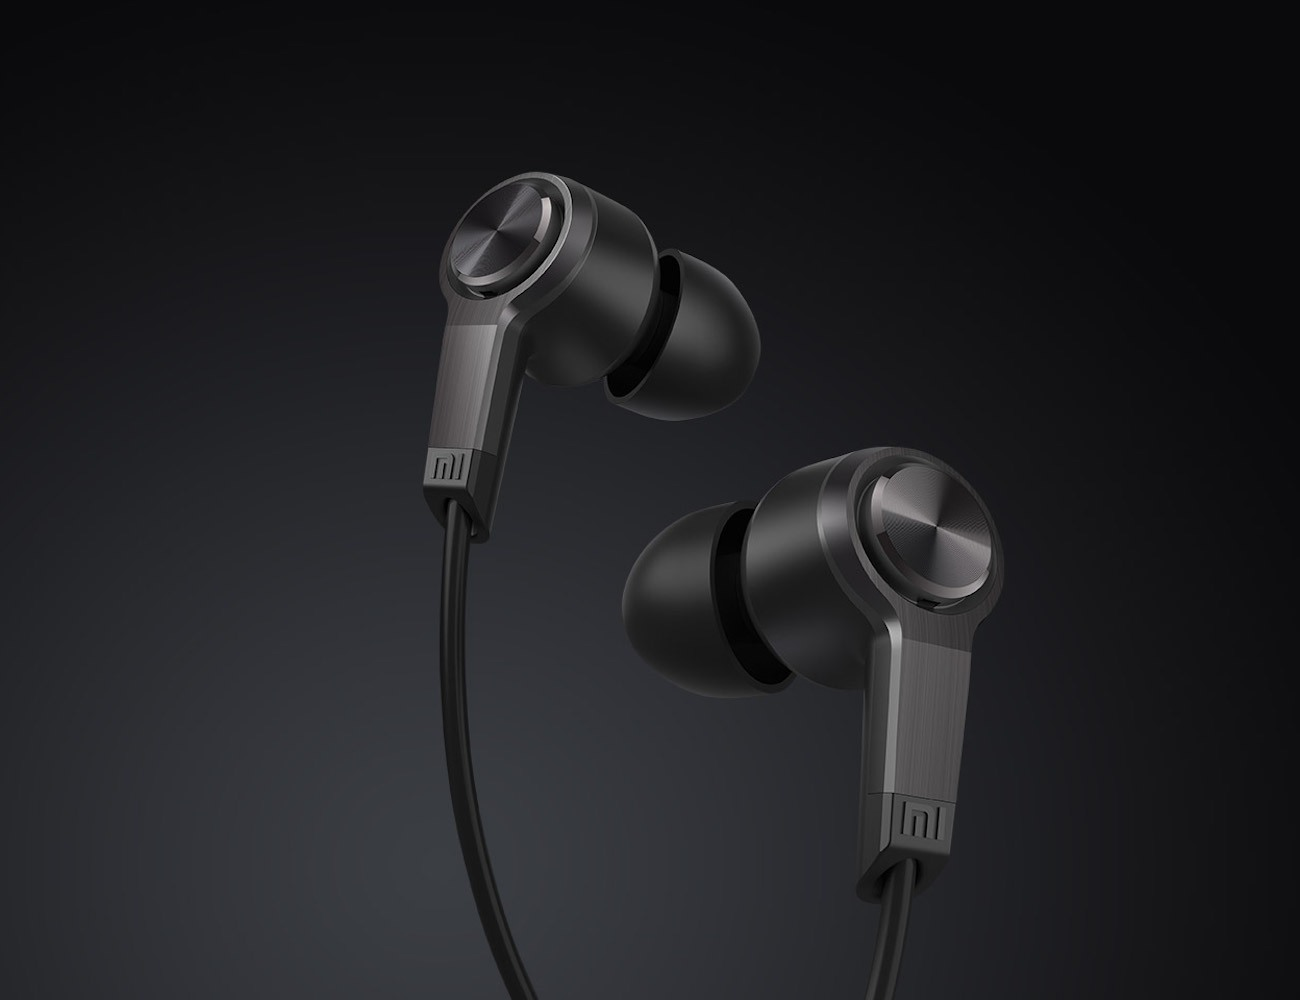 Xiaomi+Piston+In-Ear+Stereo+Earphone